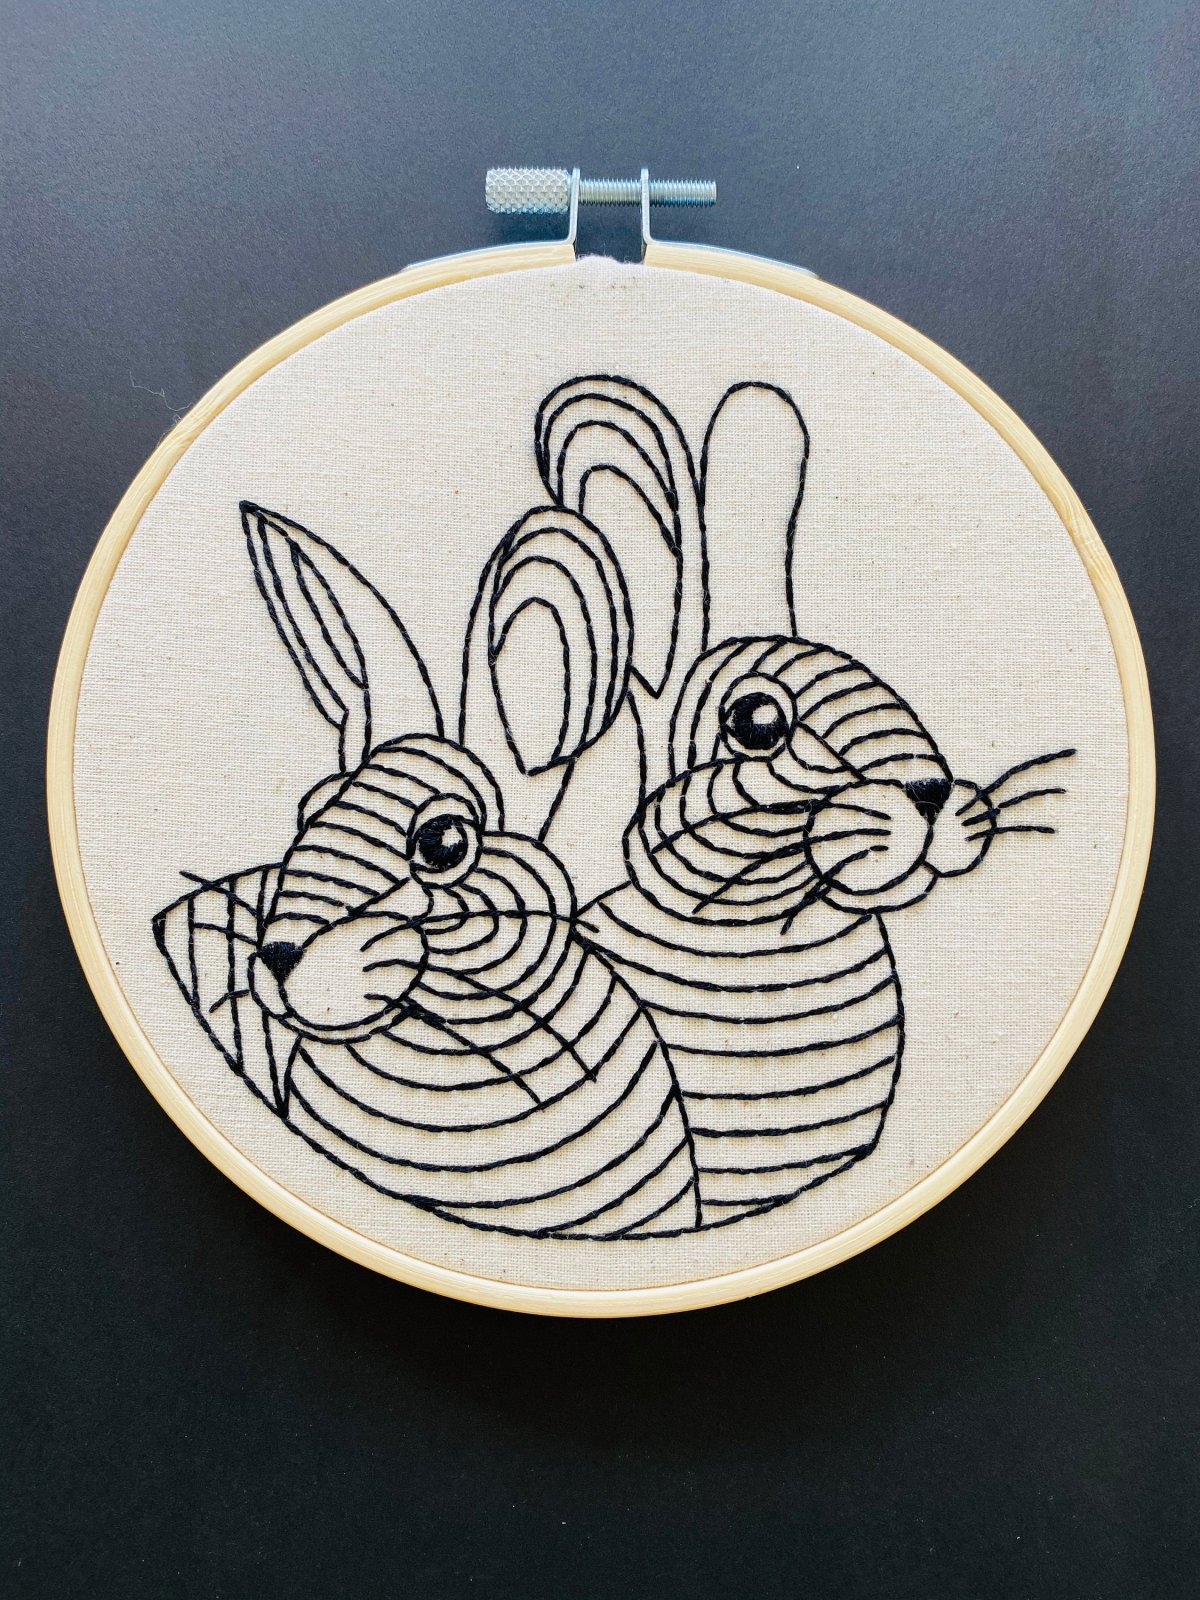 Rabbit Rabbit - Complete Embroidery Kit